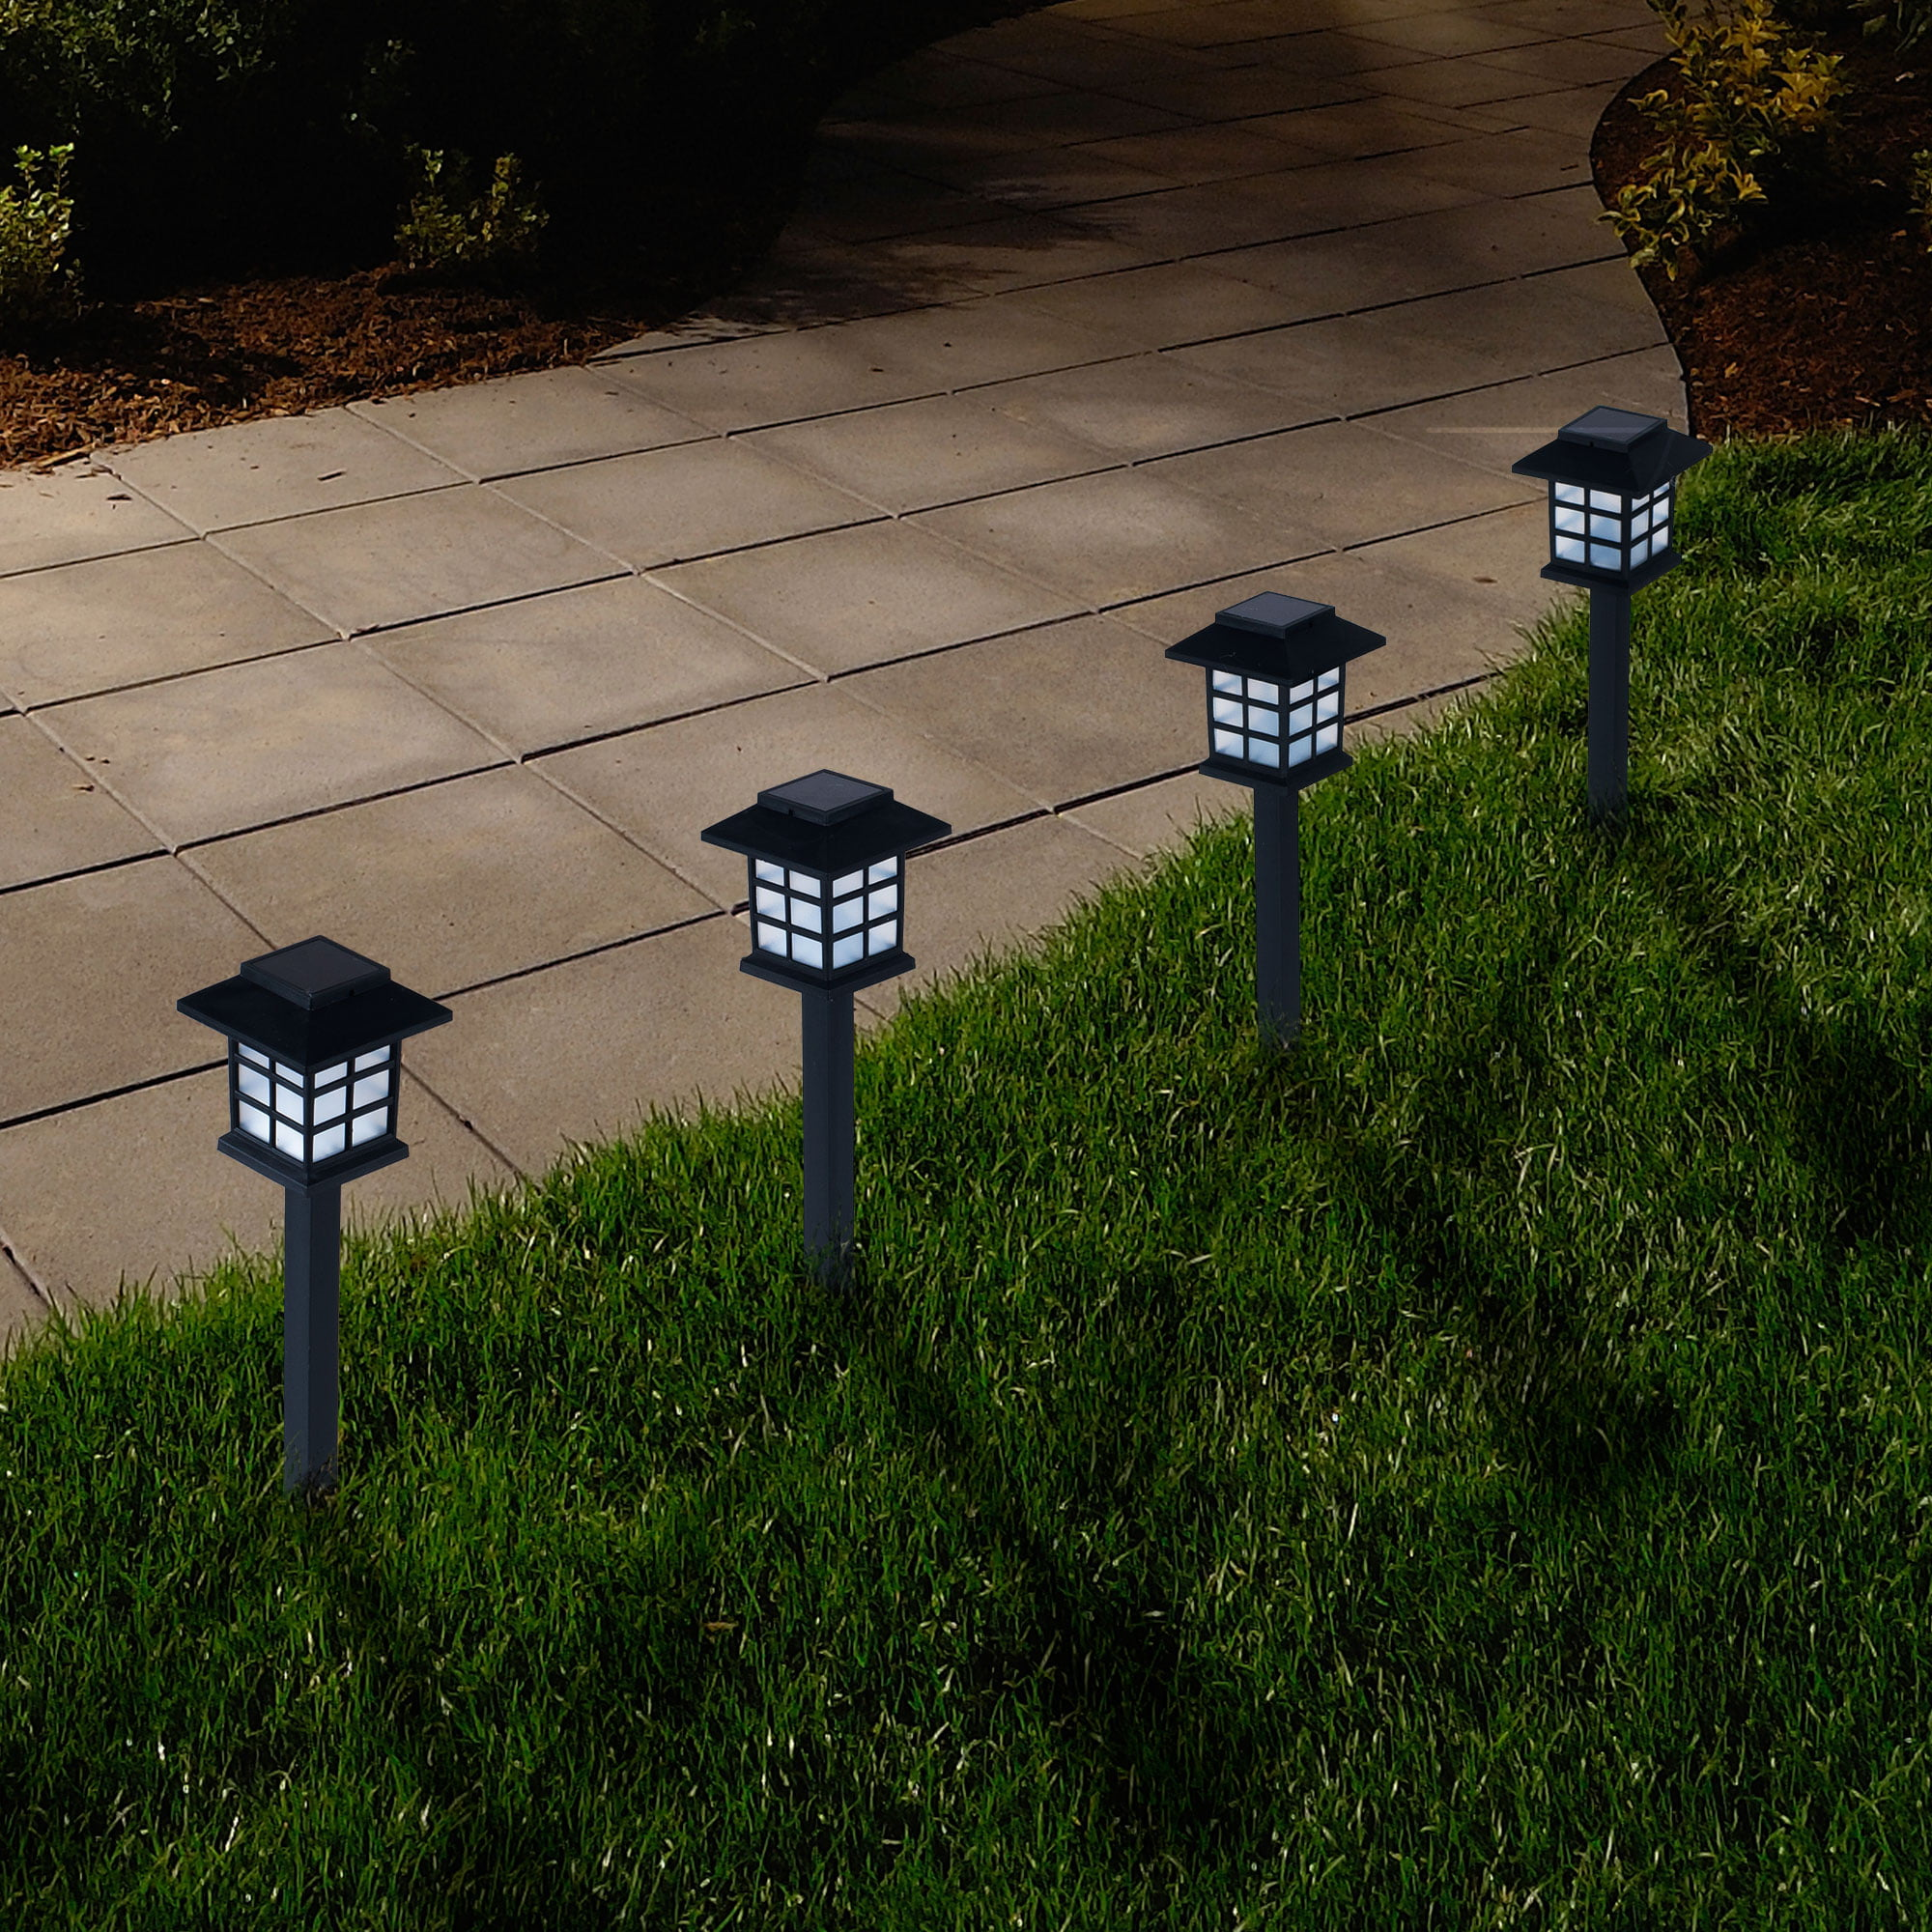 Outdoor Lantern Solar Landscaping Lights Set Of 6 By Pure Garden Walmart Com Walmart Com